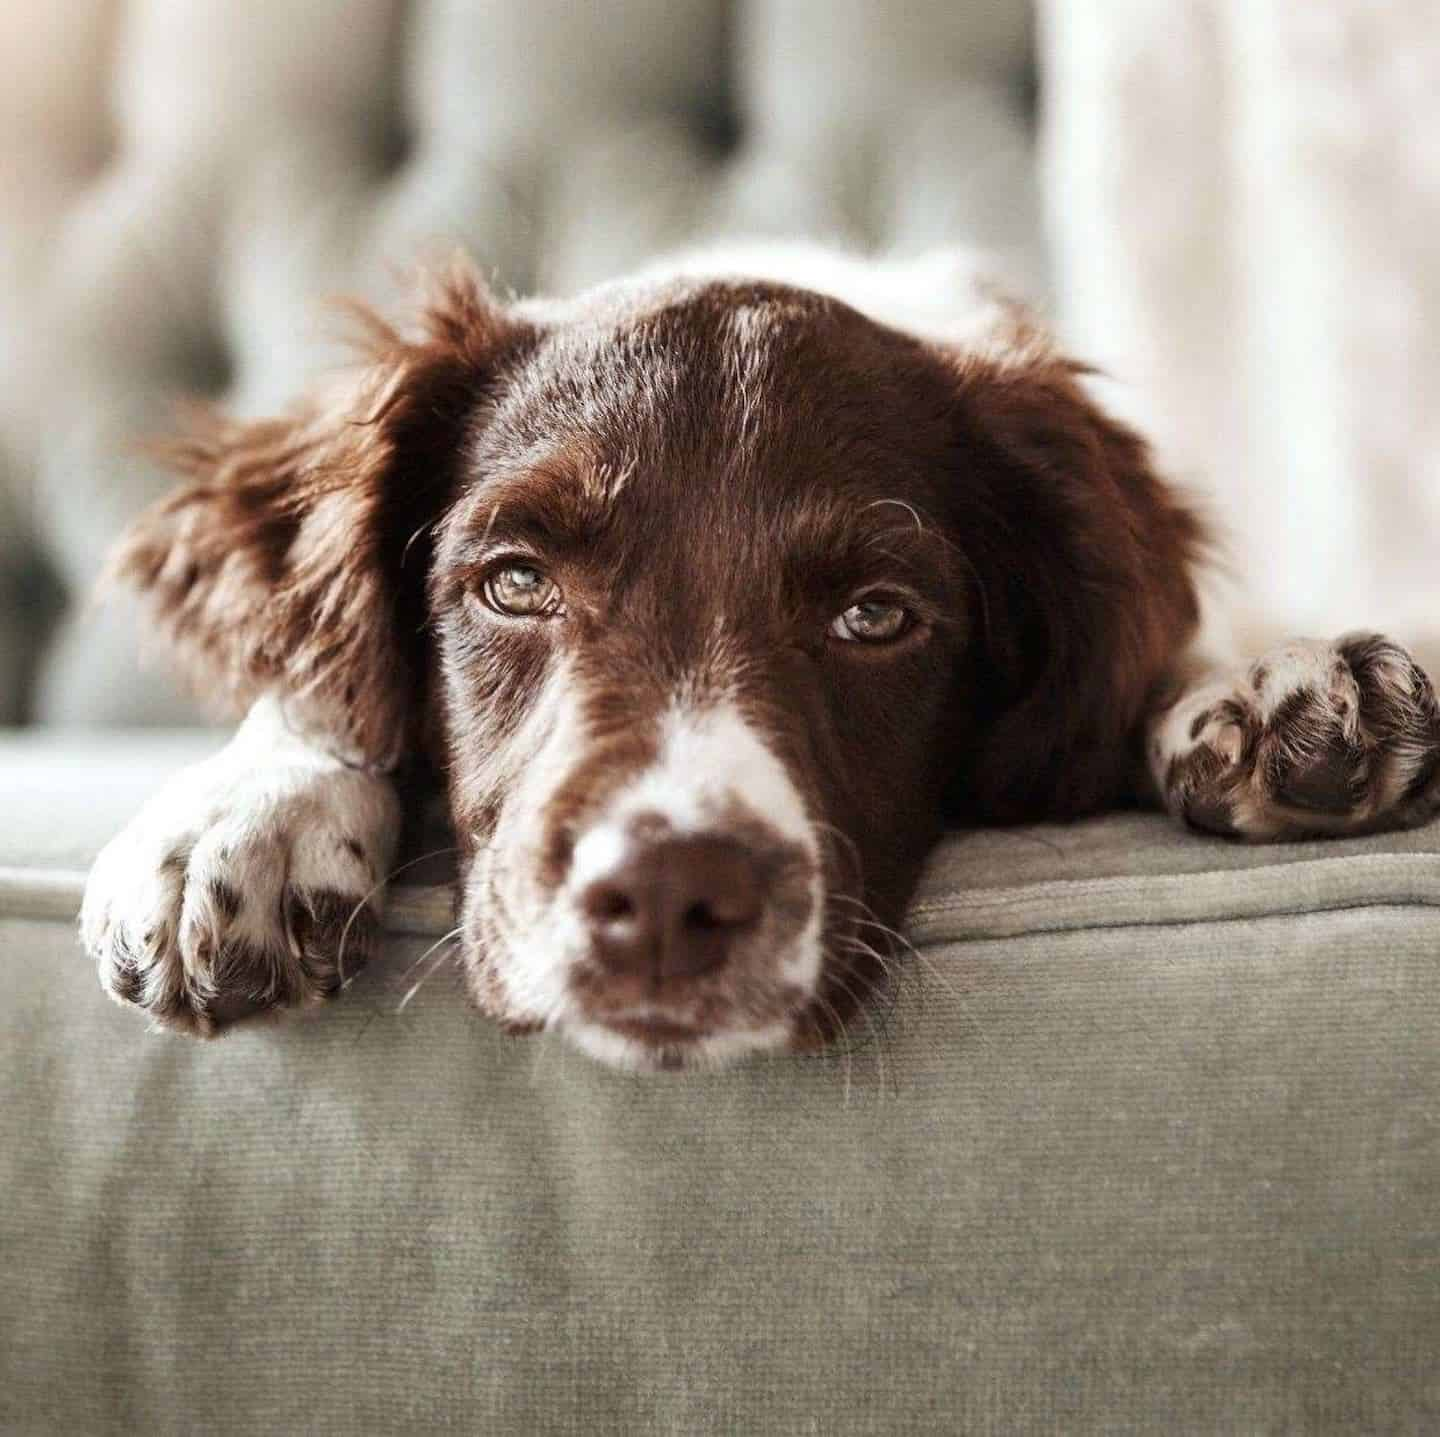 Support Groups for Dog Owners in Self-Isolation - Covid-19 Support Groups - Underdog International